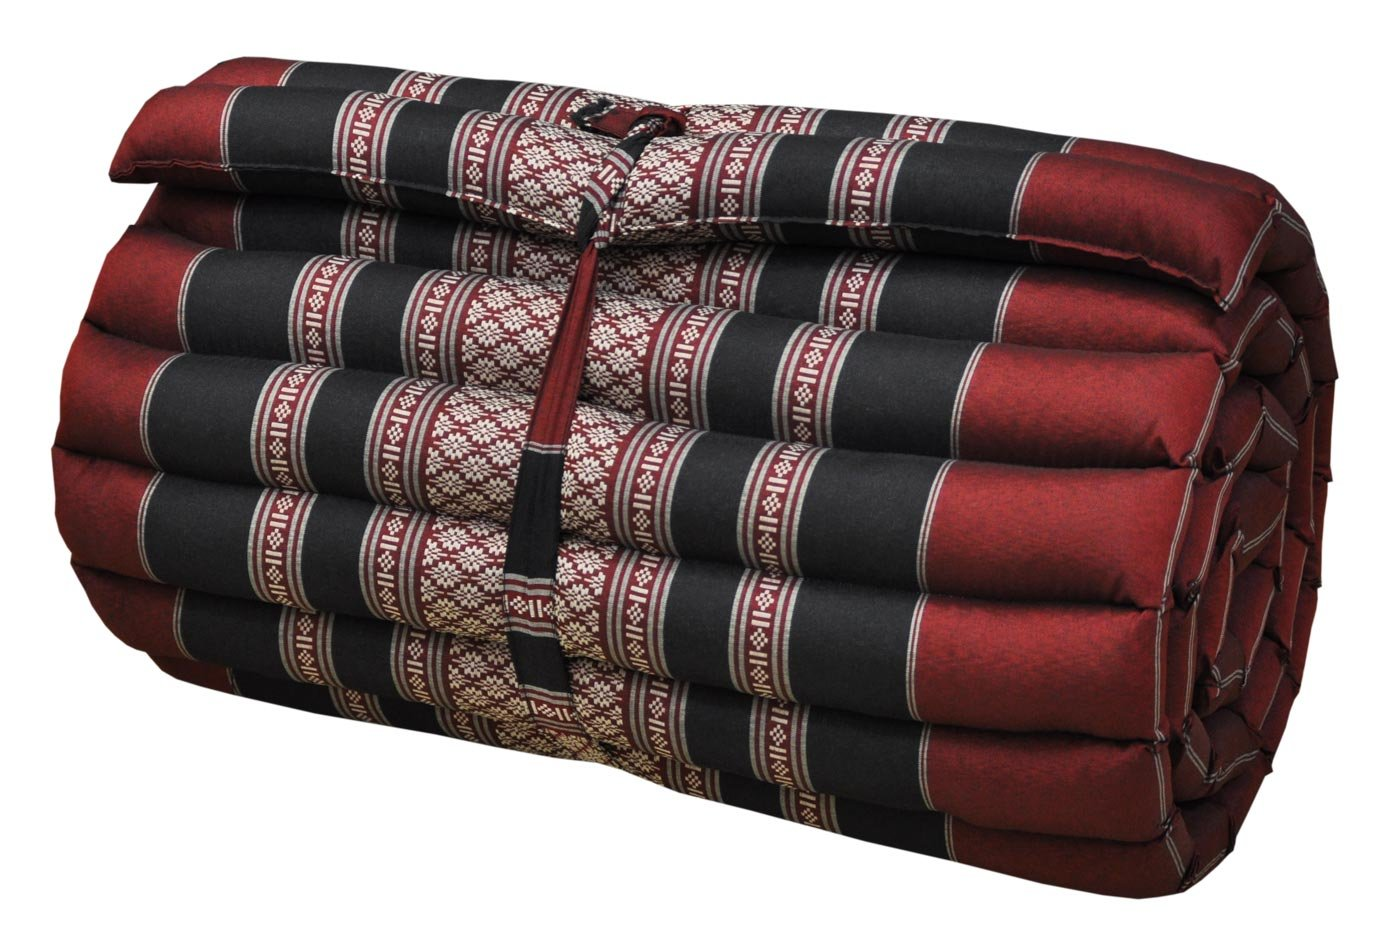 Thai Mattress Roll Up, 21.65 * 63 * 3inch, Kapok, Red, Black by Thai Mattress